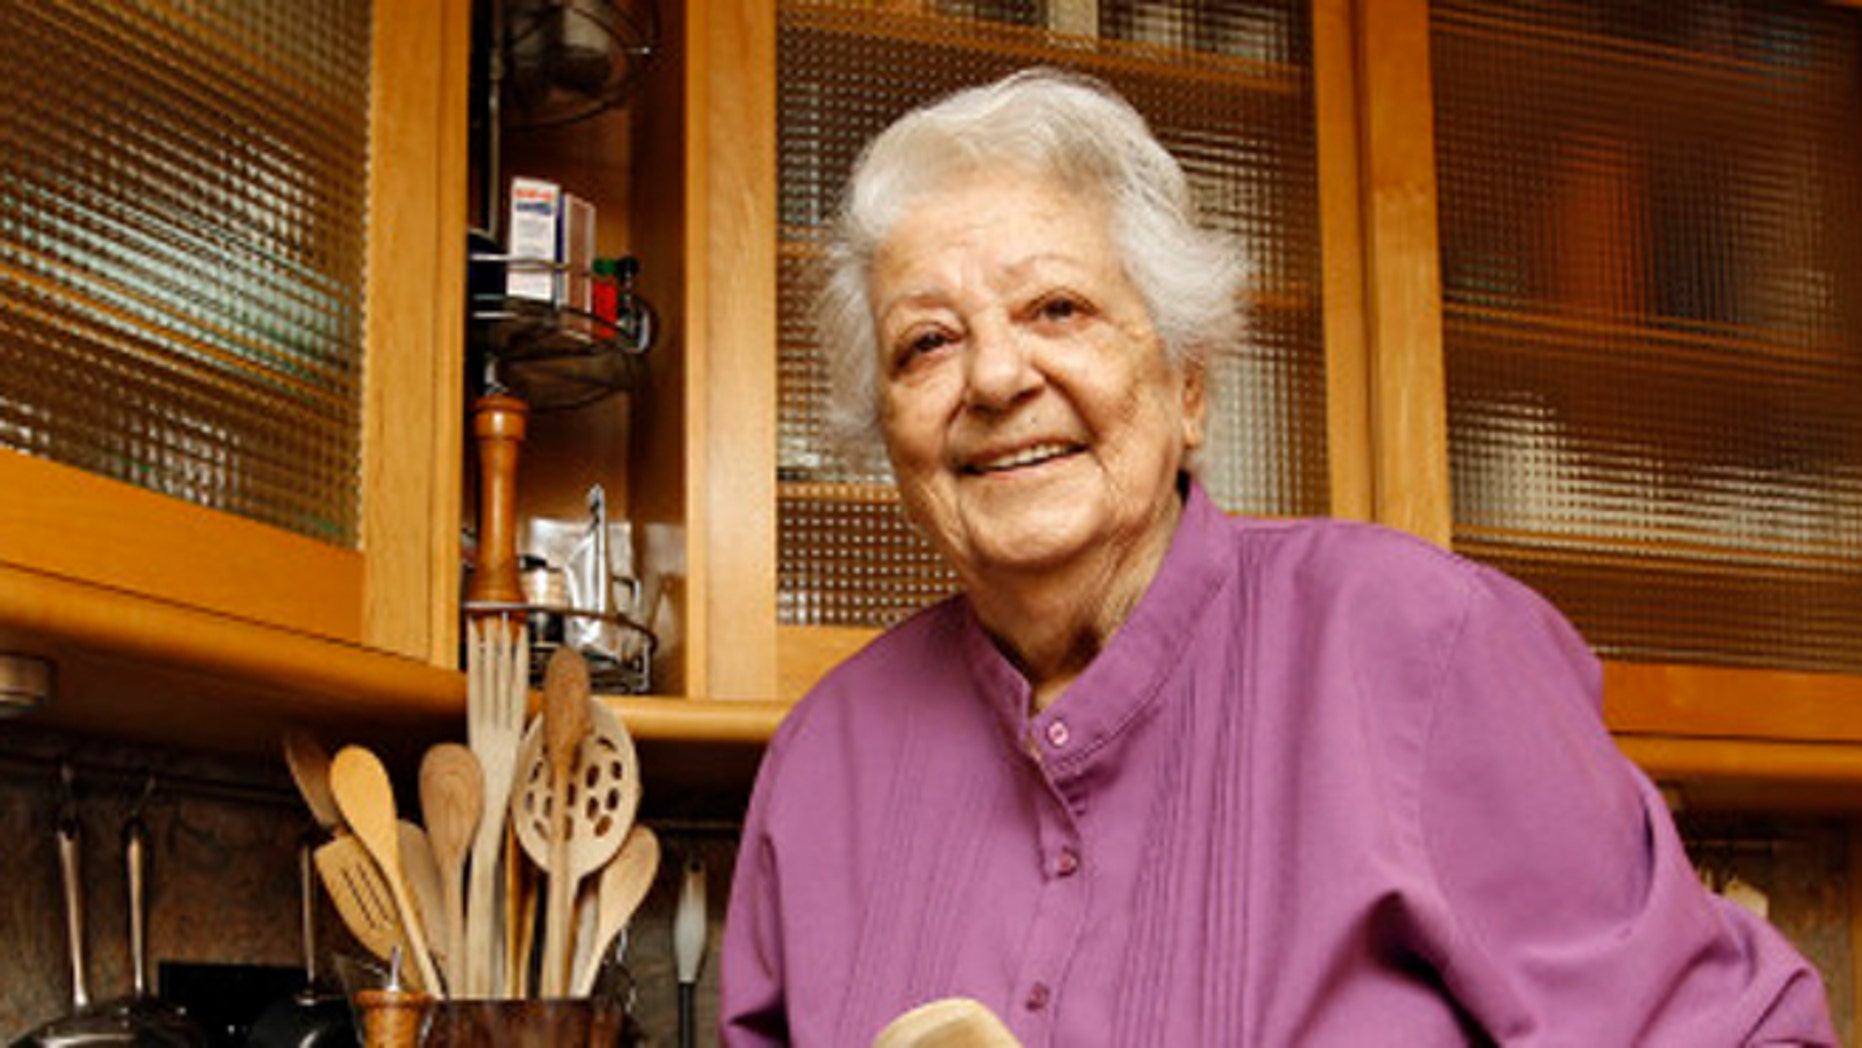 May 29, 2012: Chef Marcella Hazan posing in the kitchen of her Longboat Key, Fla., home.